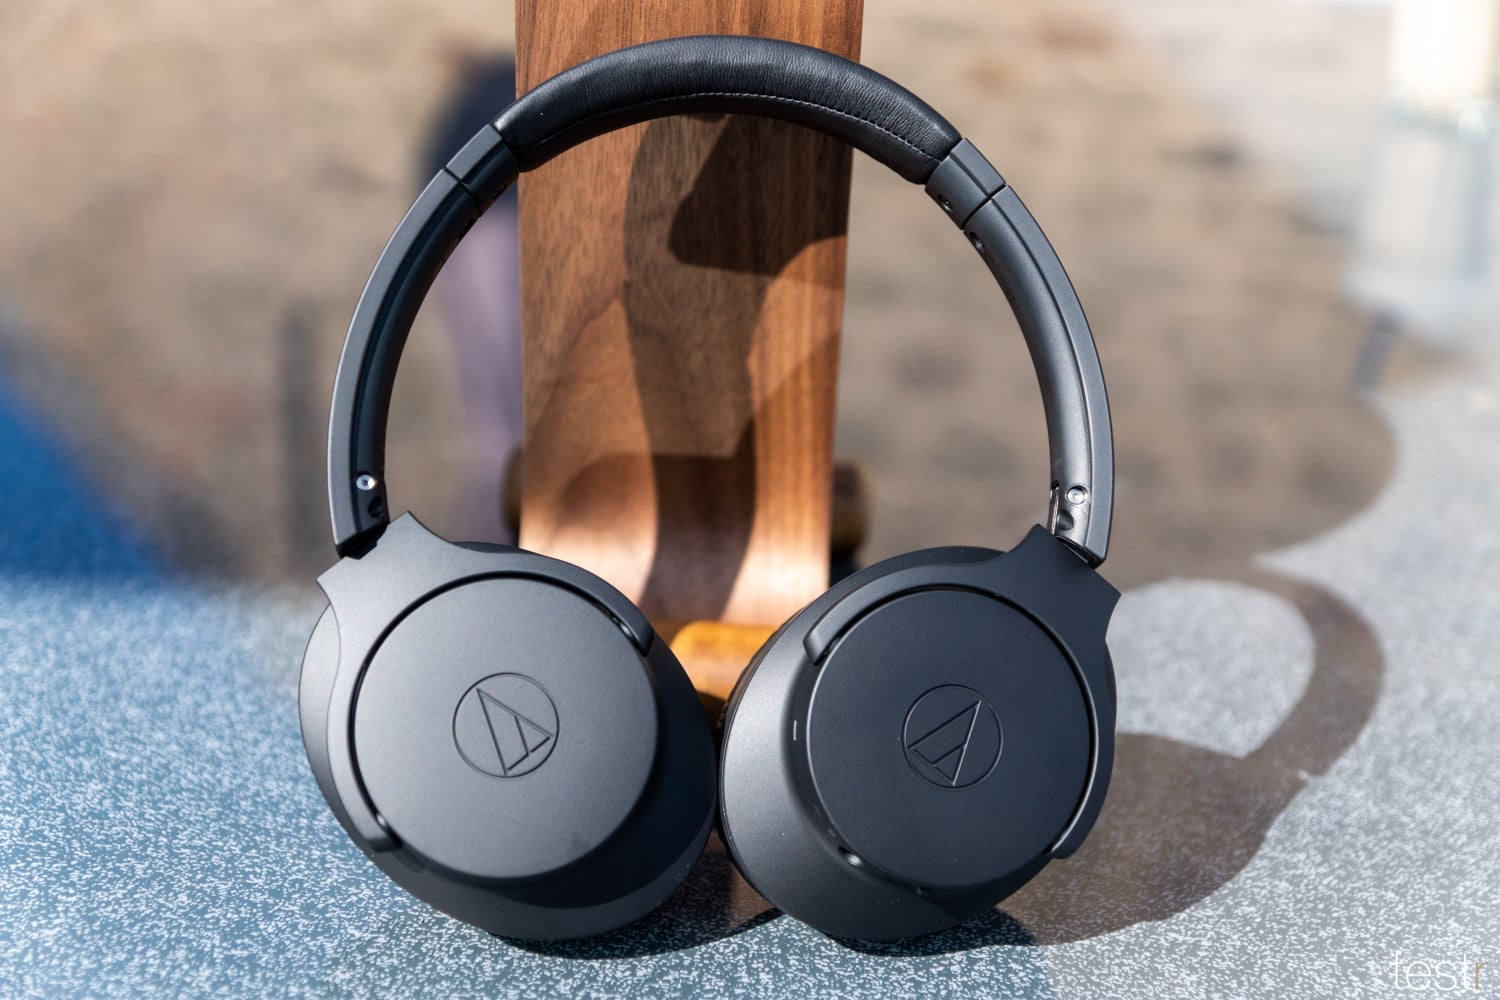 Audio Technica ATHANC700BT 7